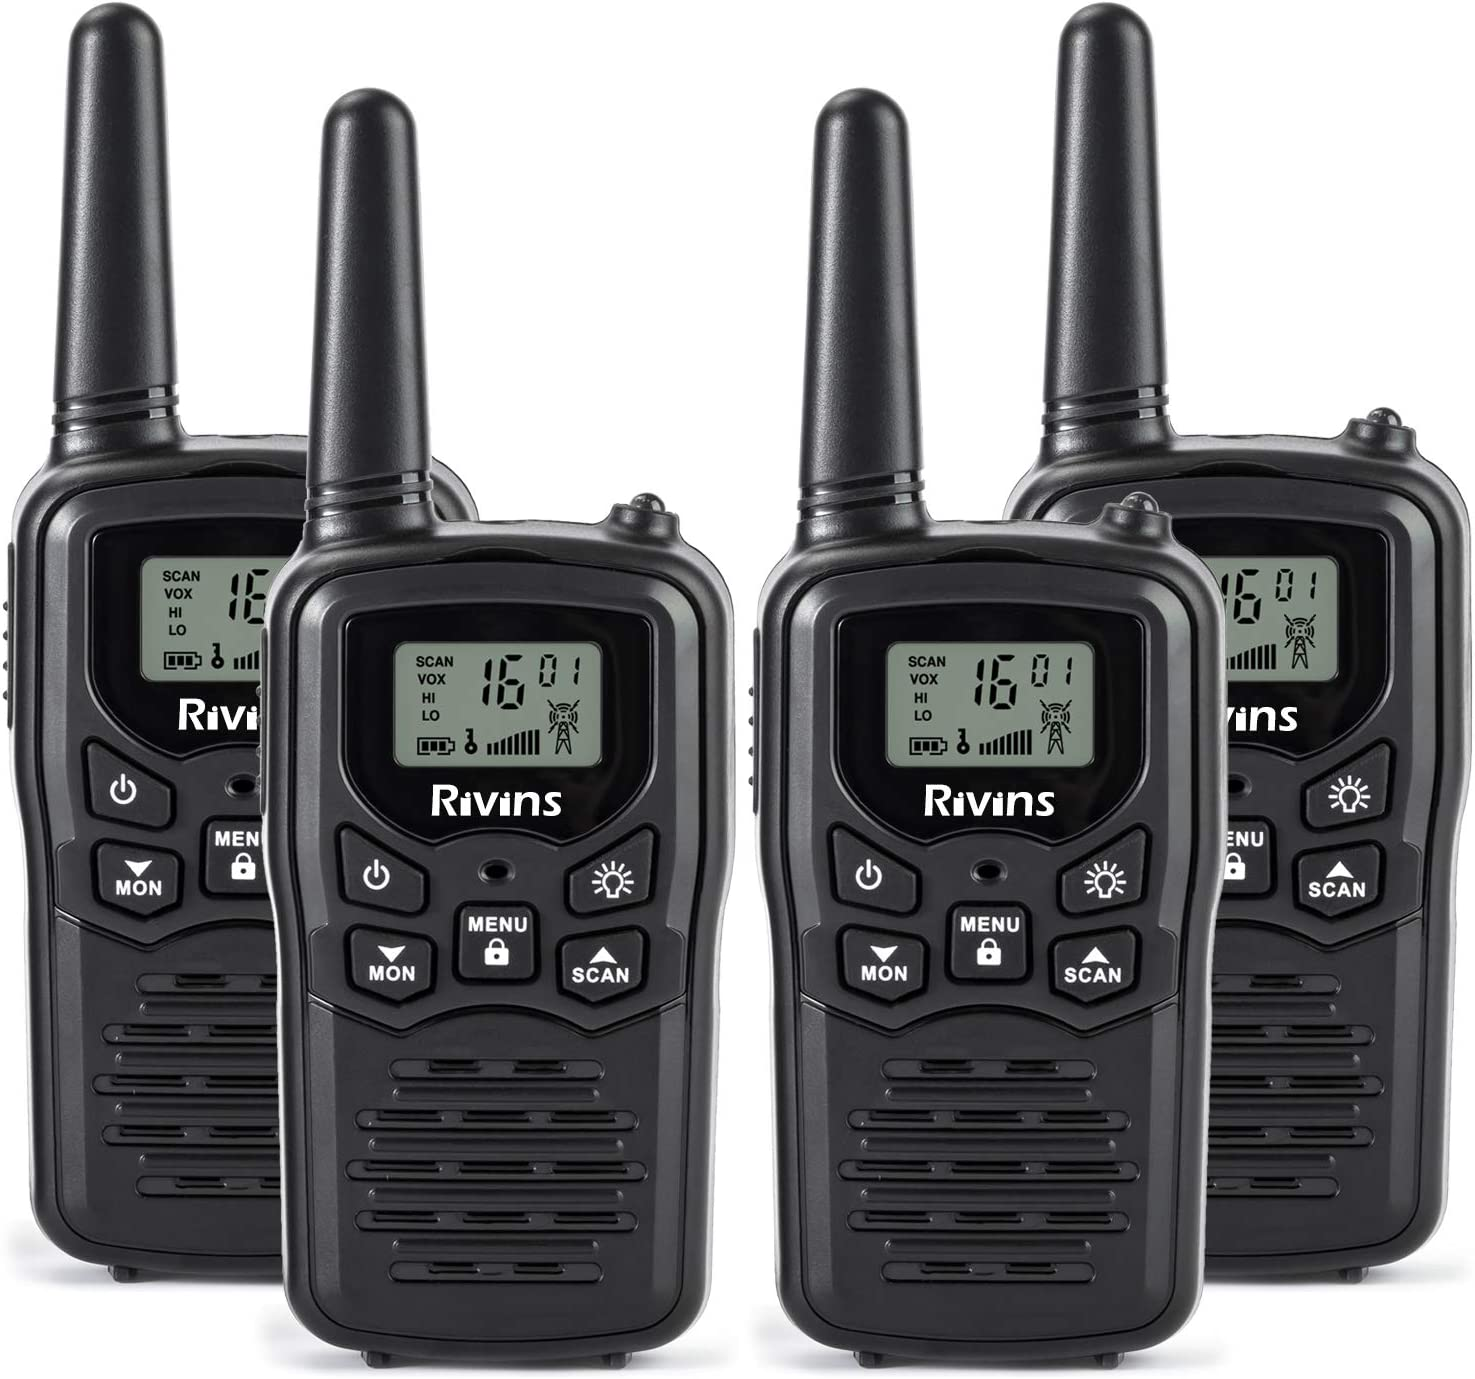 Rivins RV-7 Walkie Talkies Long Range 4 Pack 2-Way Radios Up to 5 Miles Range in Open Field 22 Channel FRS/GMRS Walkie Talkie for Adults UHF Handheld Walky Talky (Black/Orange)